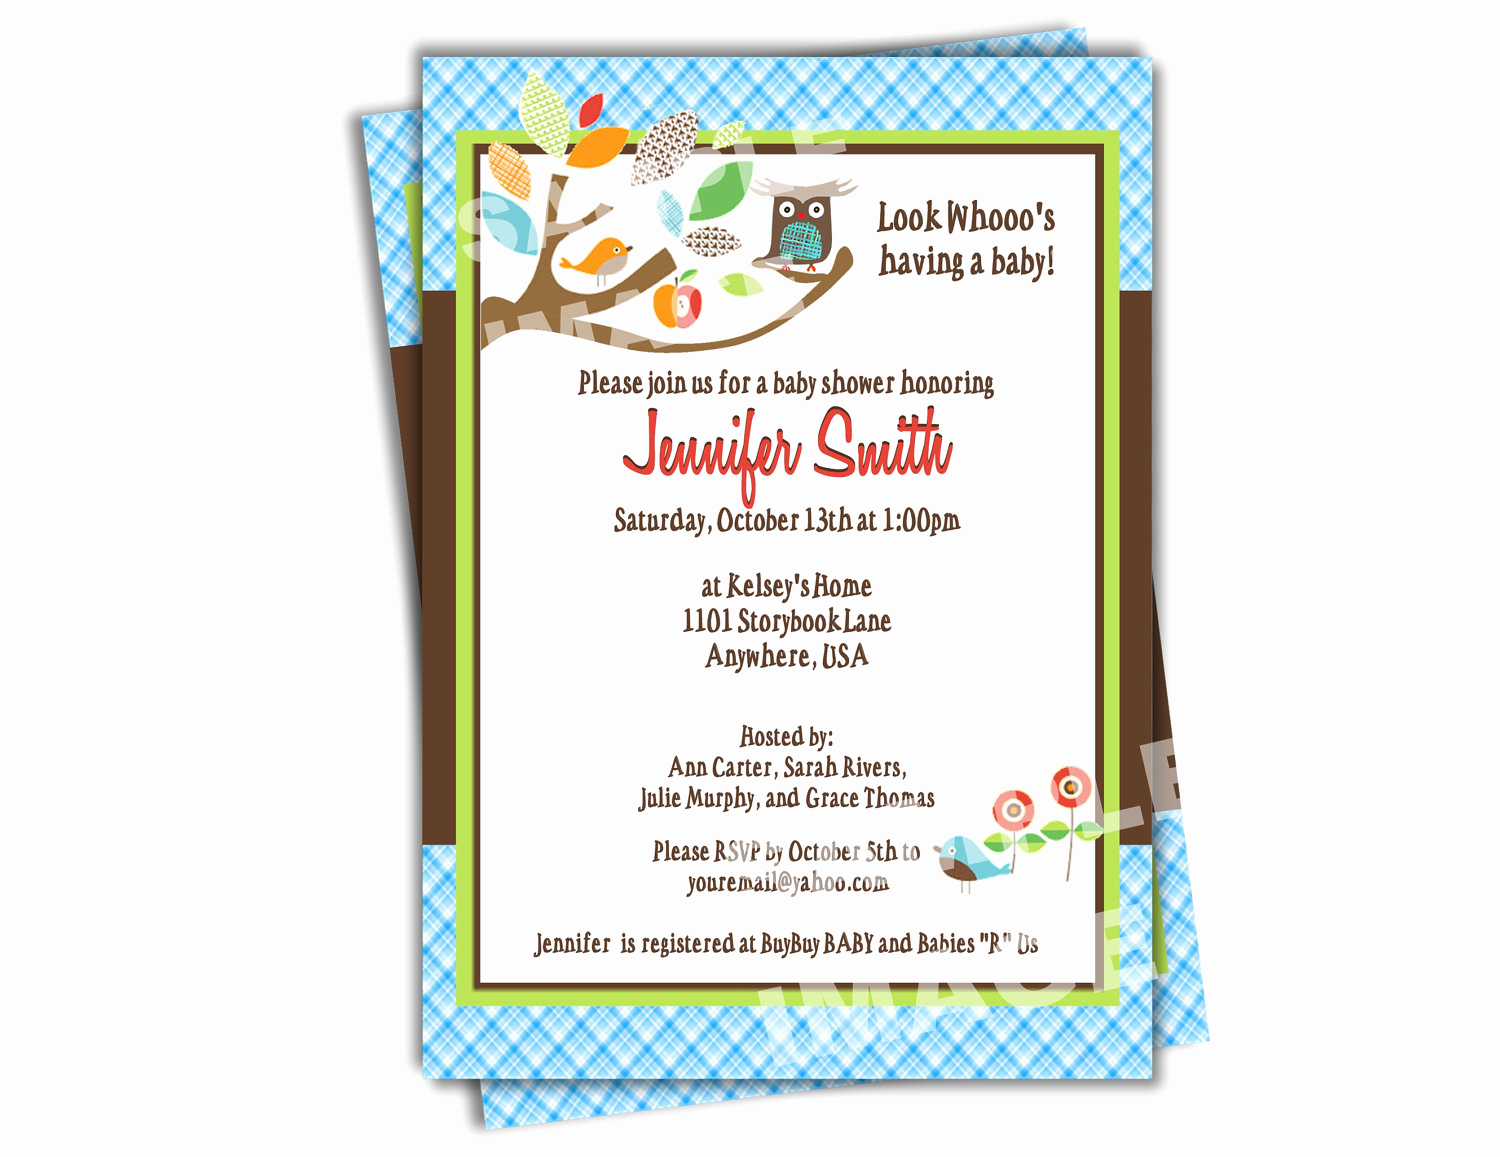 Baby Shower Pics for Invitation Awesome Owl Baby Shower Invitation Skiphop Treetop Friends Baby